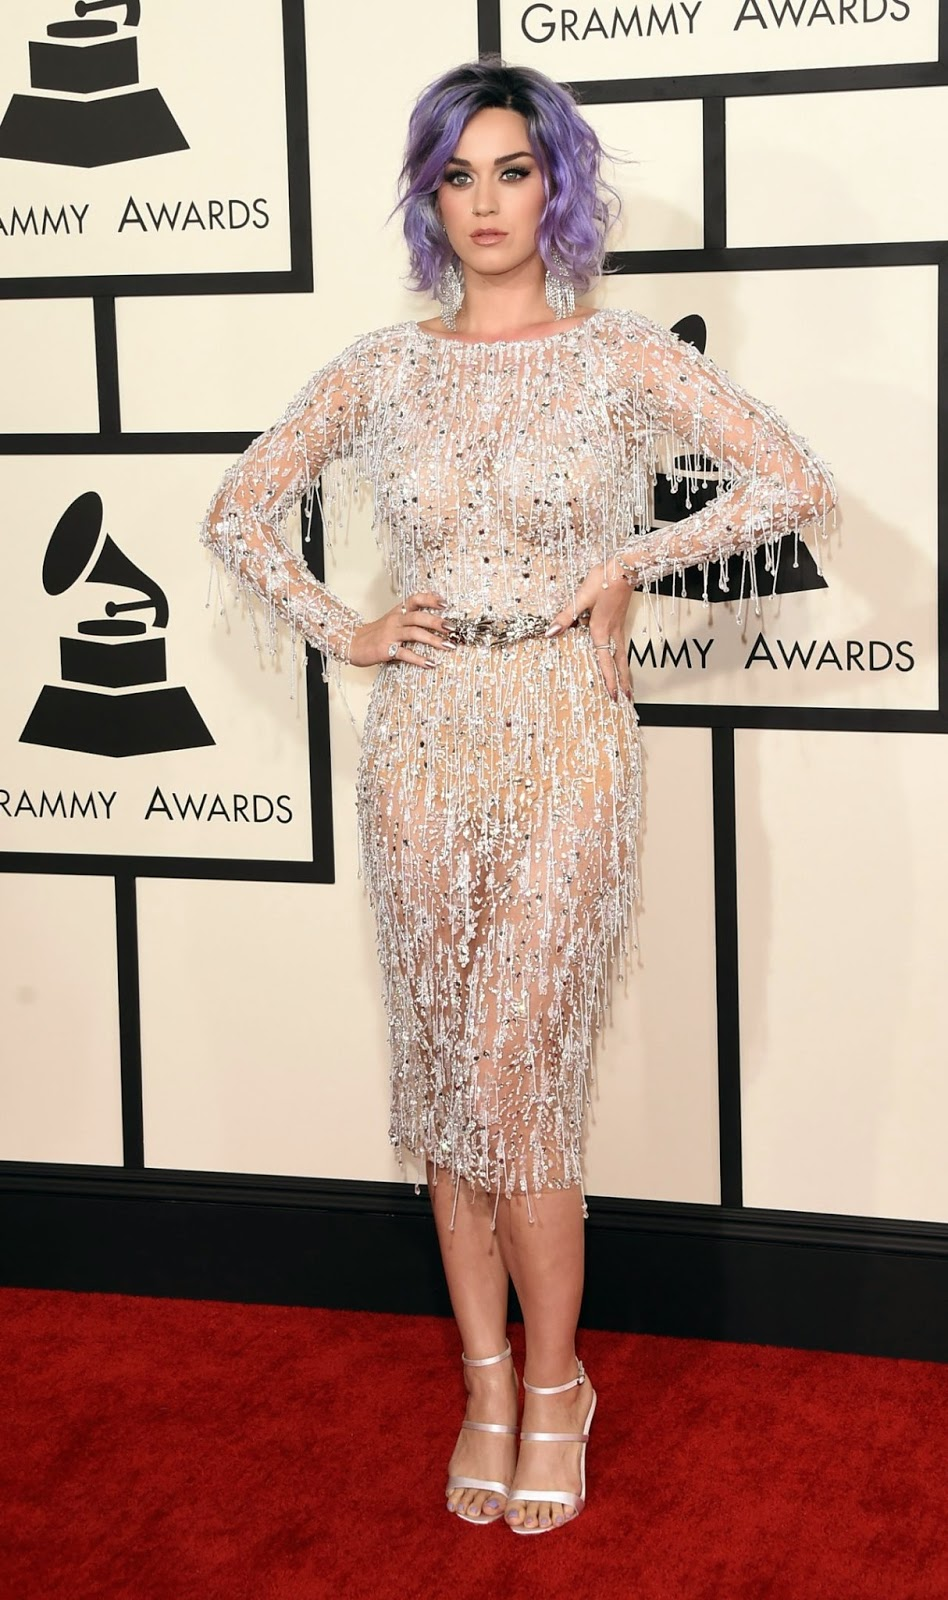 Katy Perry – 2015 Grammy Awards Red Carpet Dress – Red Carpet